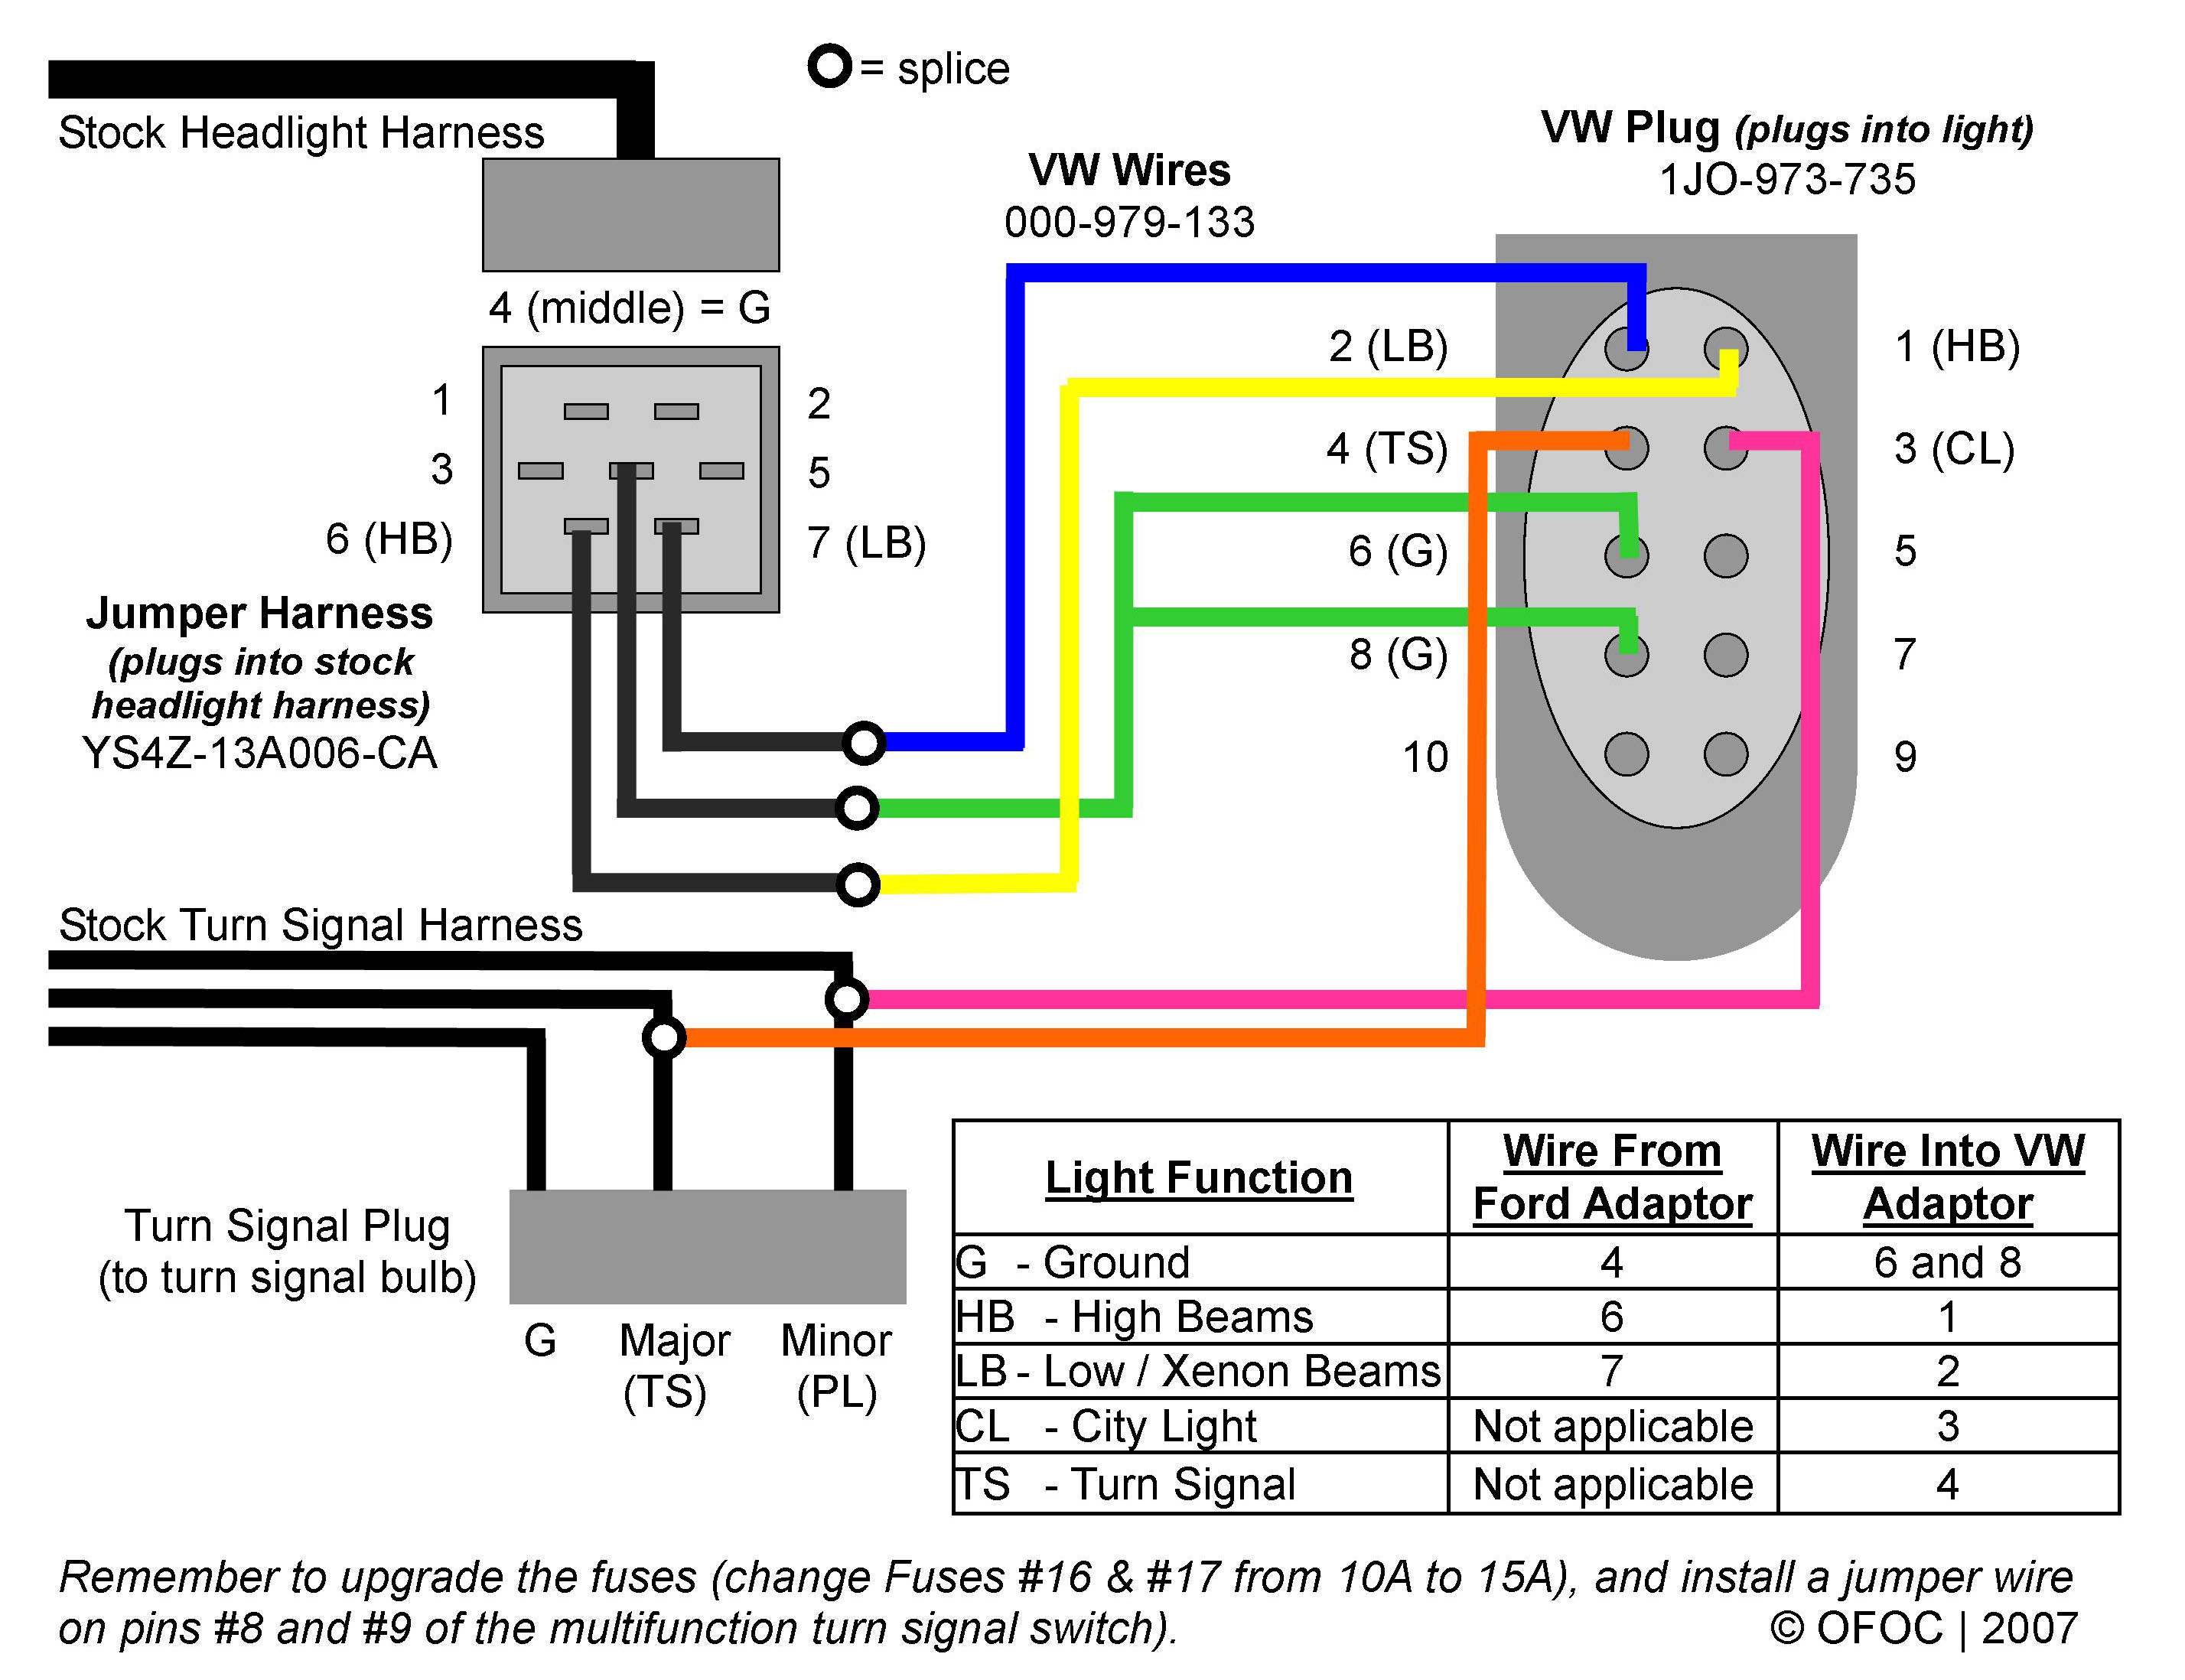 wiringschematic how to vw wiring hack (convert your car to euro mach headlights vw headlight wiring at nearapp.co